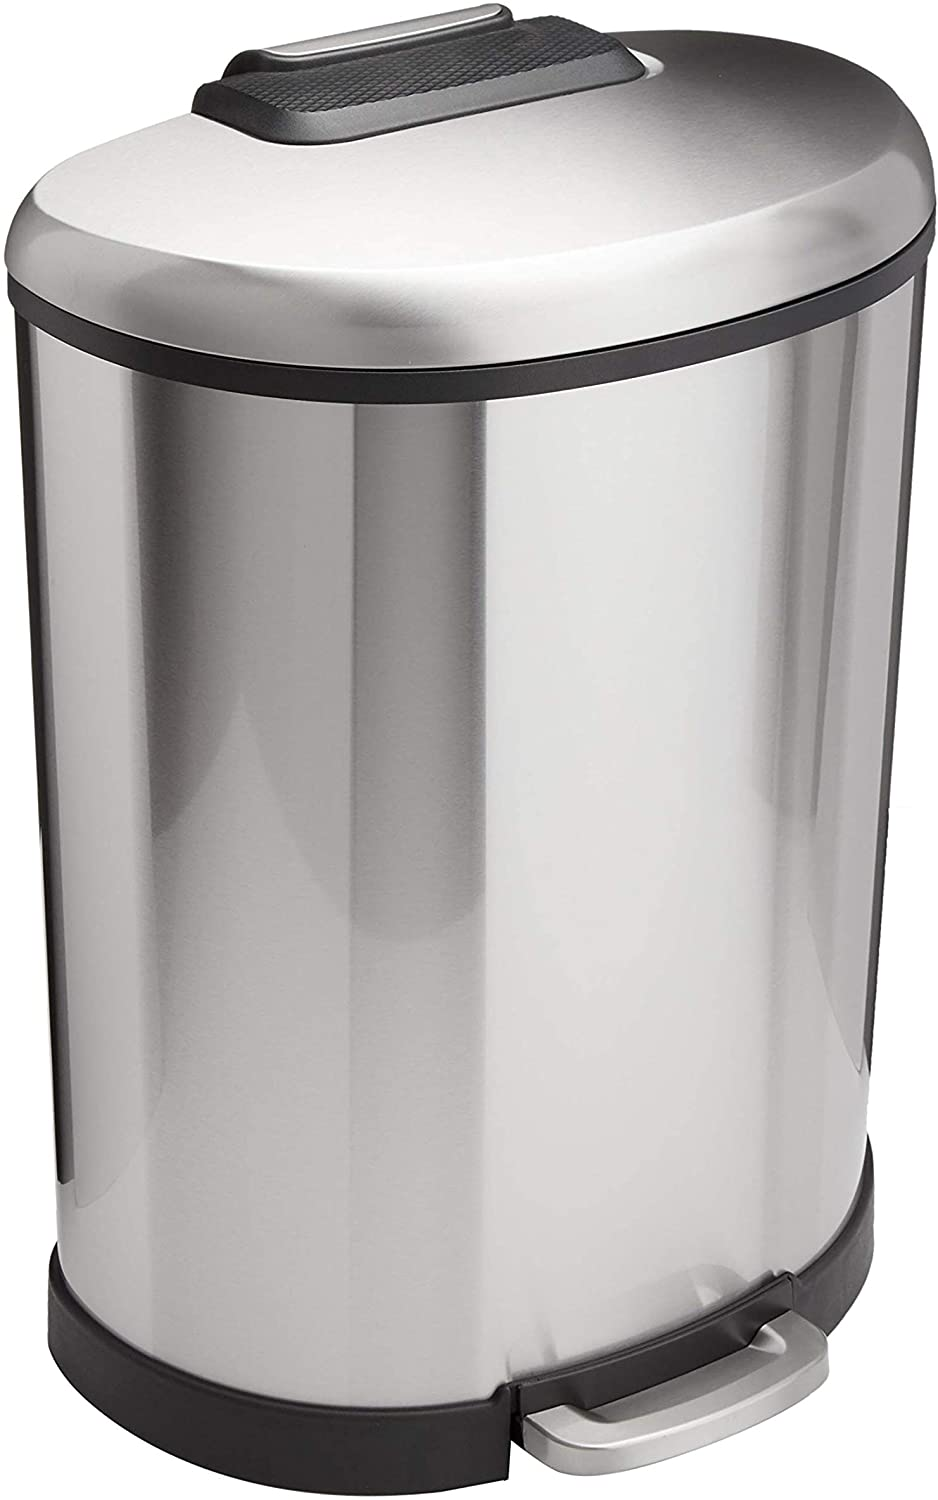 Amazon Basics 50 Liter 13.2 Gallon Soft-Close F Large special price !! Can New Shipping Free Trash with